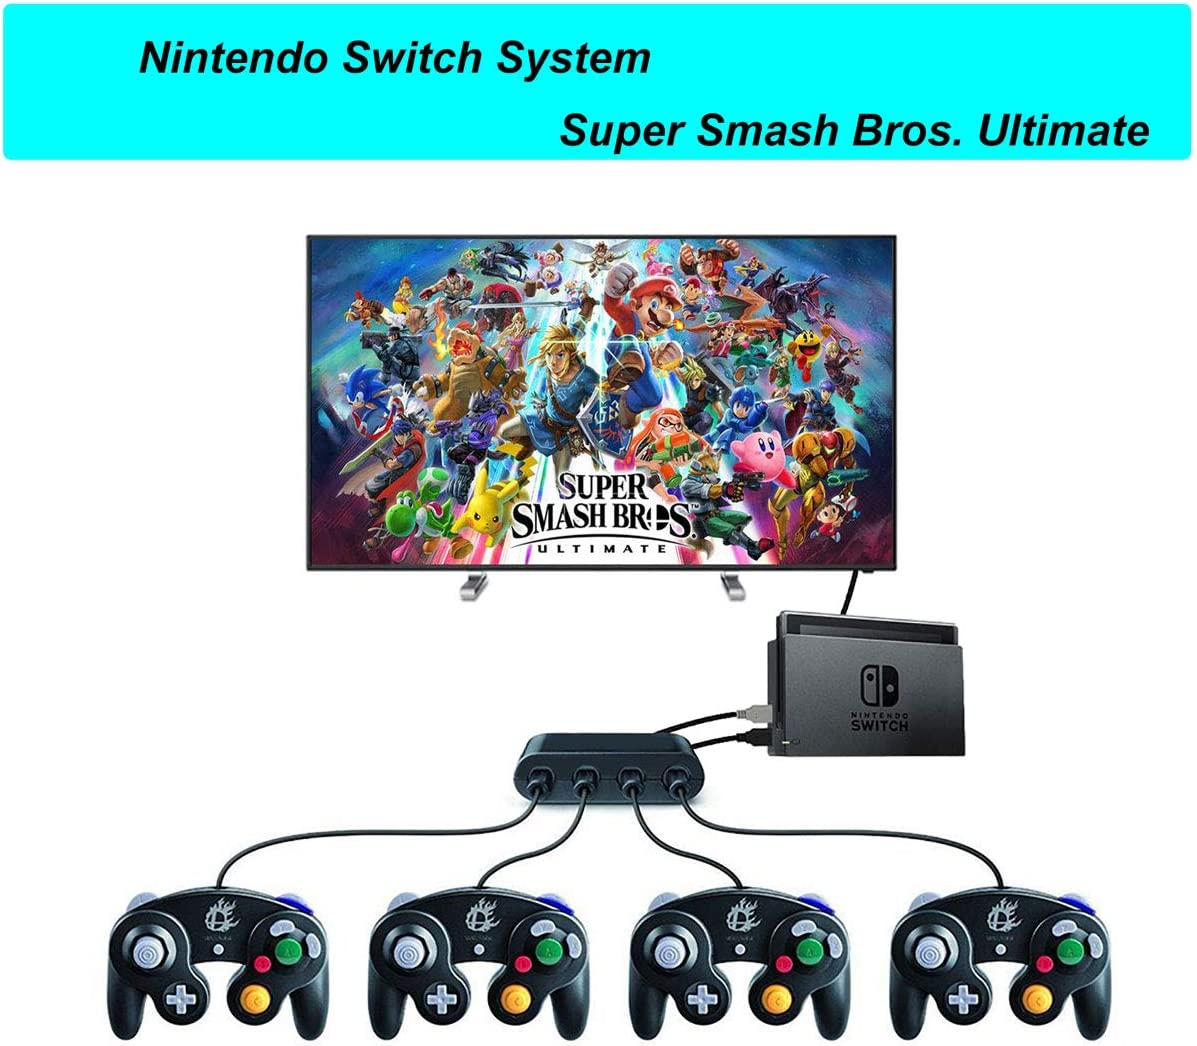 Super Smash Bros Switch, Gamecube Controller Adapter for Nintendo Switch, Wii U and PC USB, Gamecube NGC Controller Adapter with 4 Ports Black- No Need Driver: Amazon.es: Electrónica